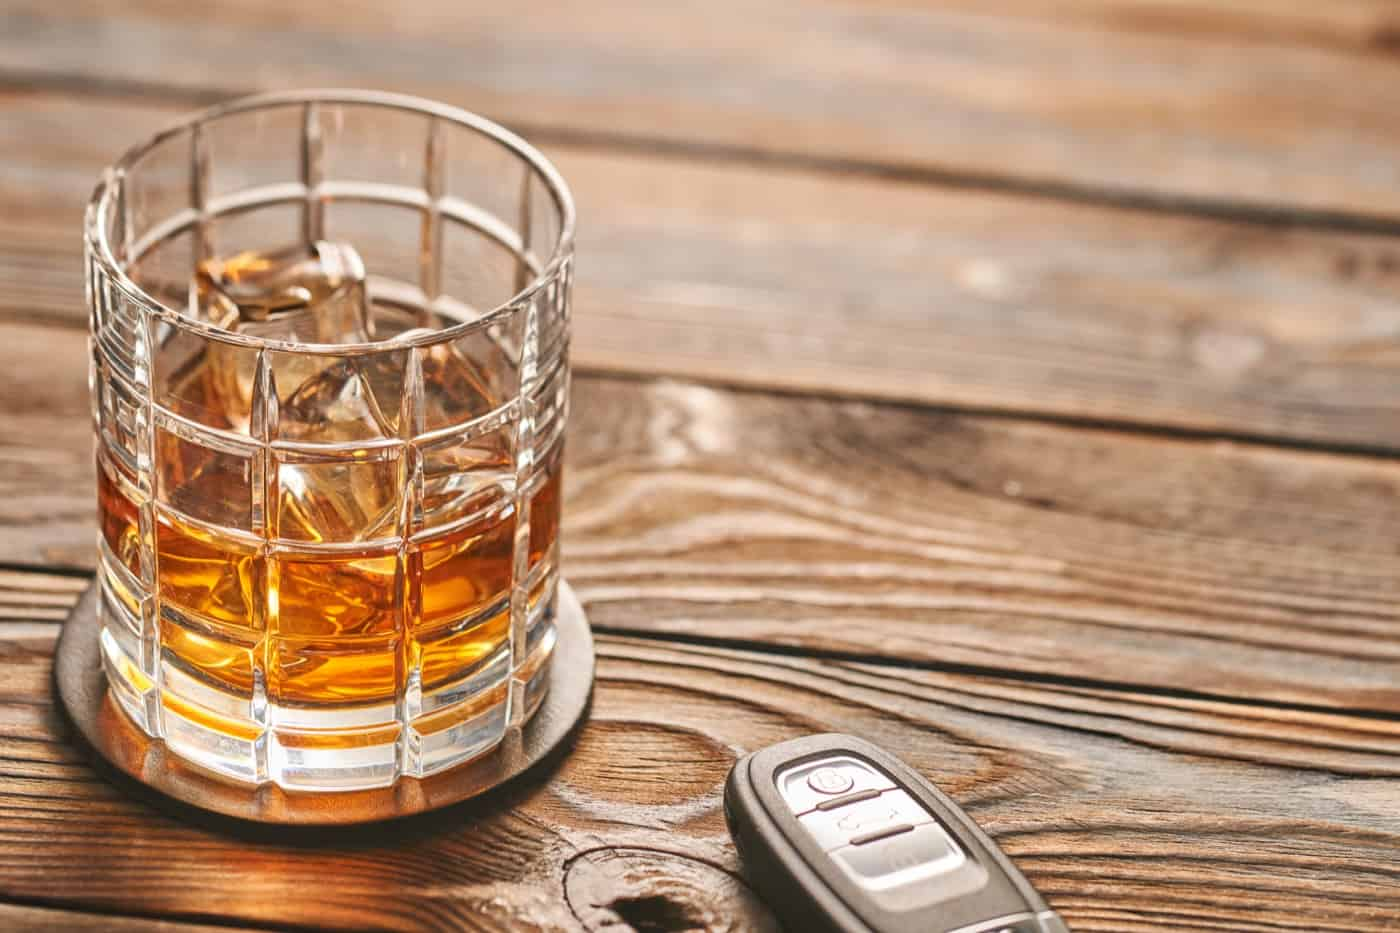 Glass of whiskey or alcohol drink with ice cubes and car key. Drink and drive concept.